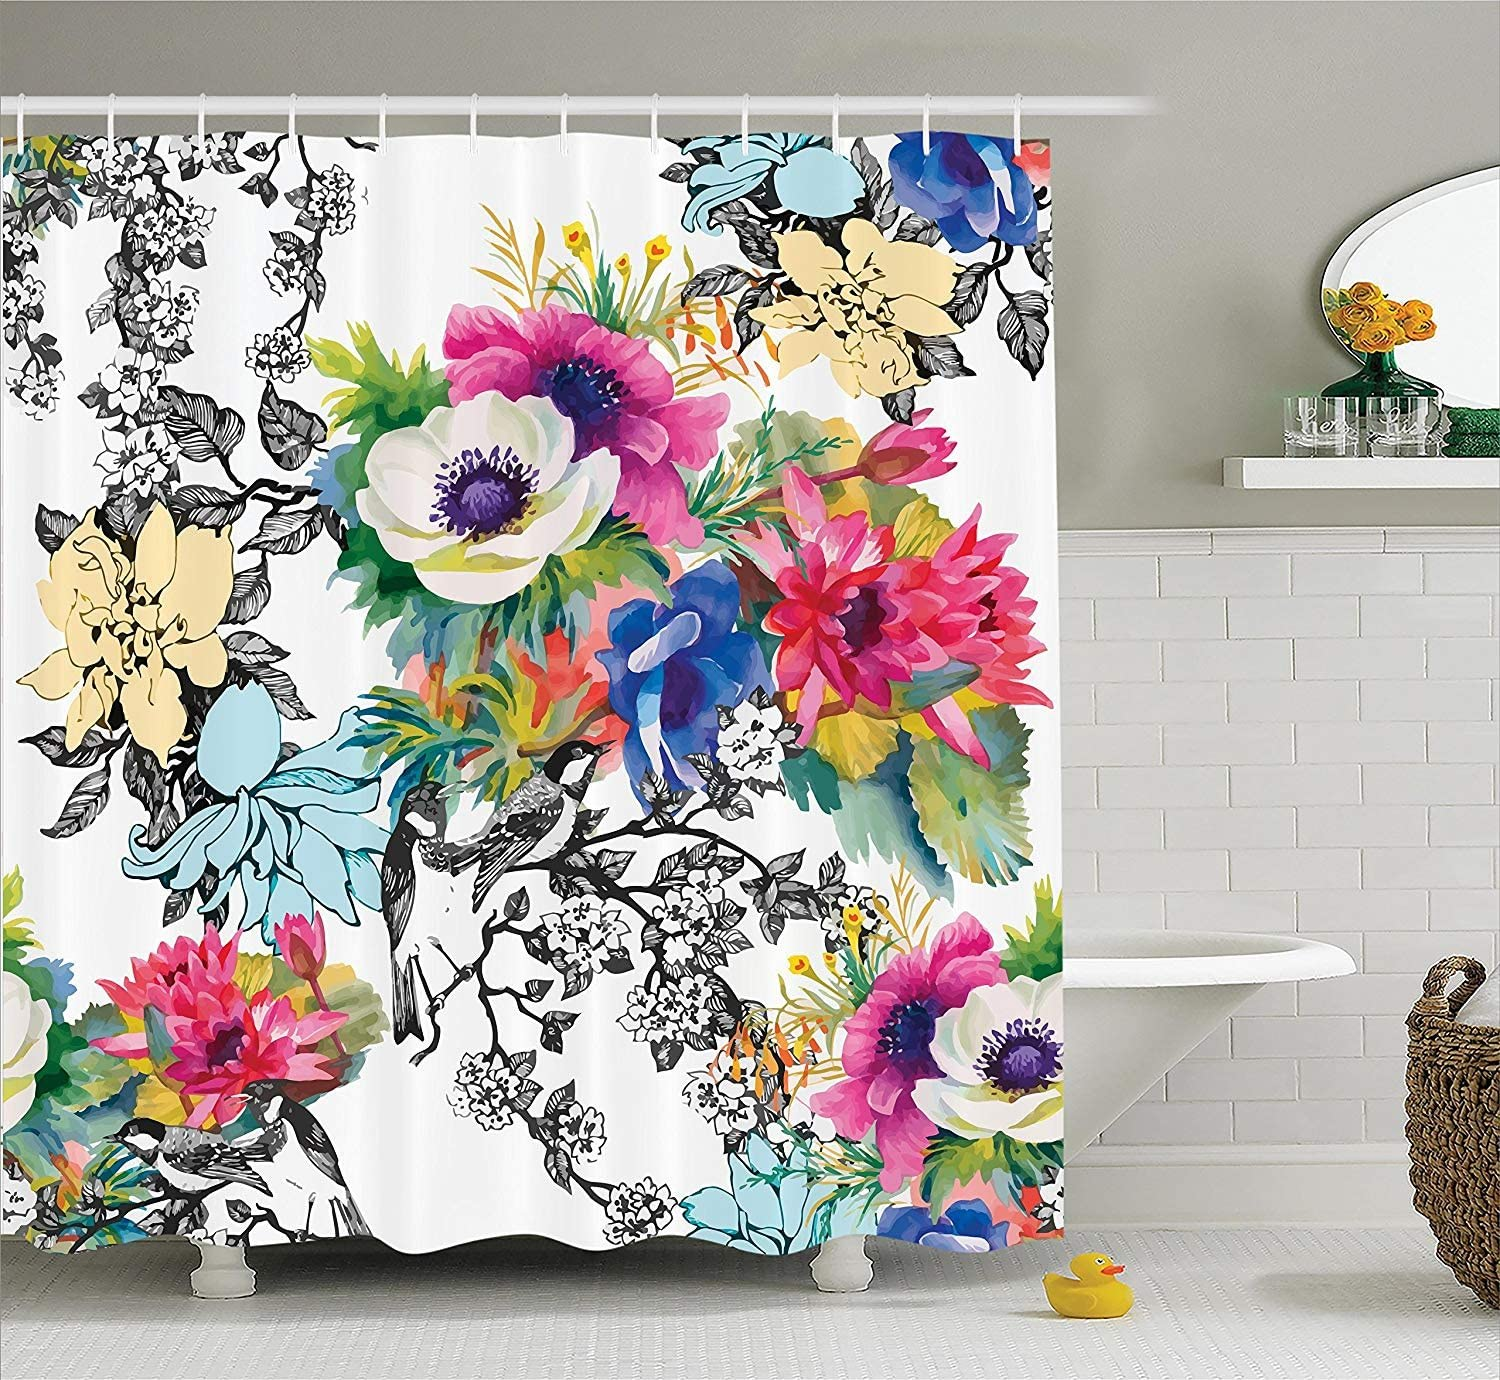 "Ambesonne Flower Shower Curtain, Vivid Colorful Garden Print Blossoming Wildflowers Birds Leaves Branches, Cloth Fabric Bathroom Decor Set with Hooks, 75"" Long, Rainbow"